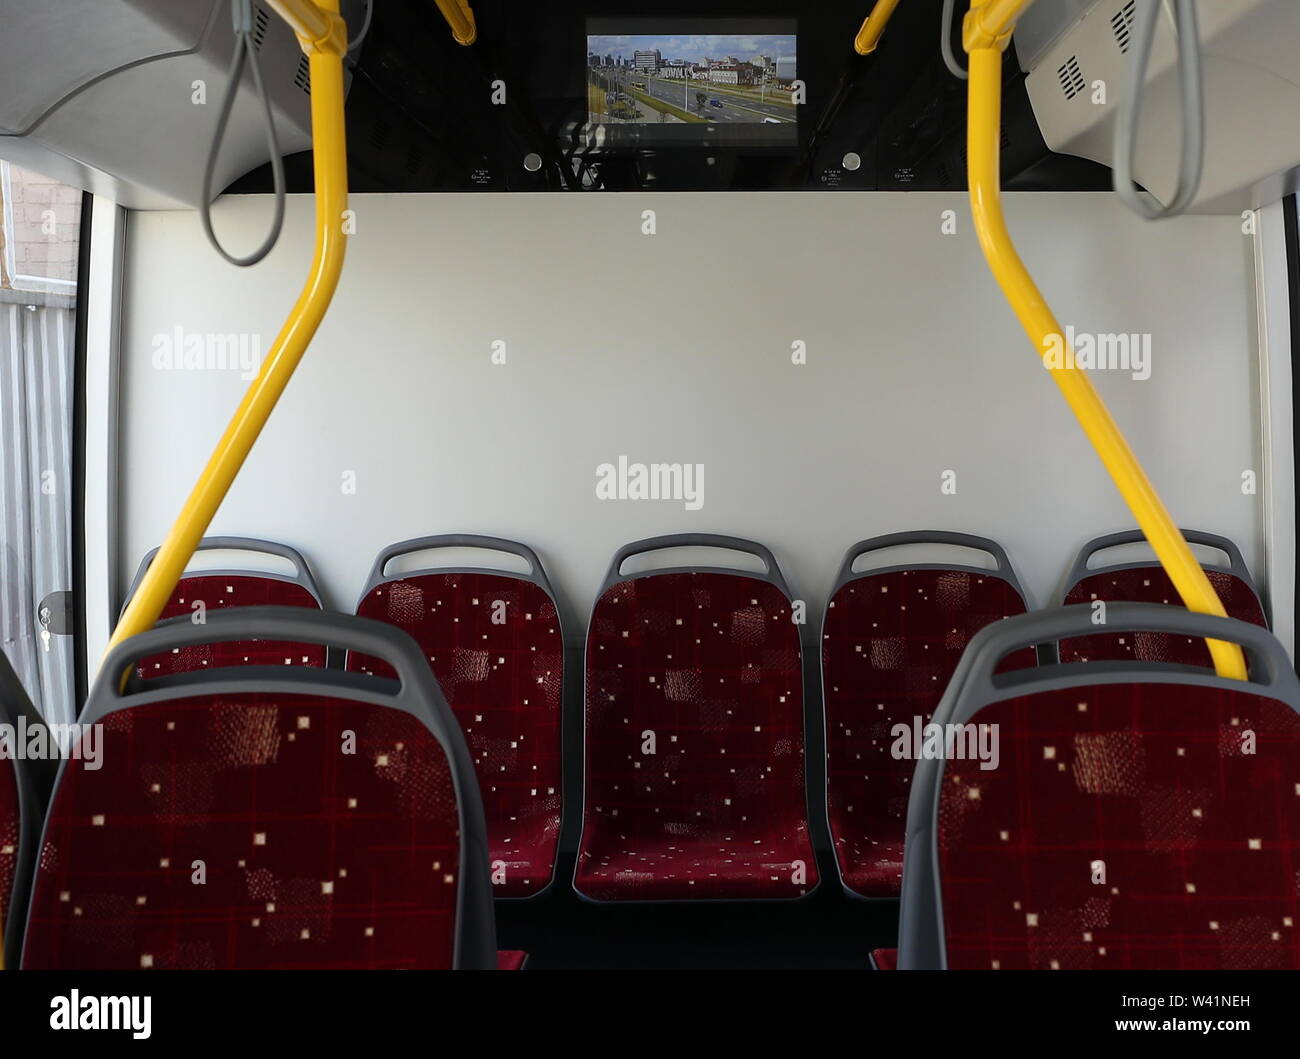 Yekaterinburg, Russia. 19th July, 2019. YEKATERINBURG, RUSSIA - JULY 19, 2019: The cabin of a Belkommunmash electric bus during a test run along Trolleybus Route 1, from Shchorsa Street to a railway station. The bus, manufactured by Belarus' Belkommunmash Company, was displayed at the 2019 Innoprom exhibition. Donat Sorokin/TASS Credit: ITAR-TASS News Agency/Alamy Live News - Stock Image